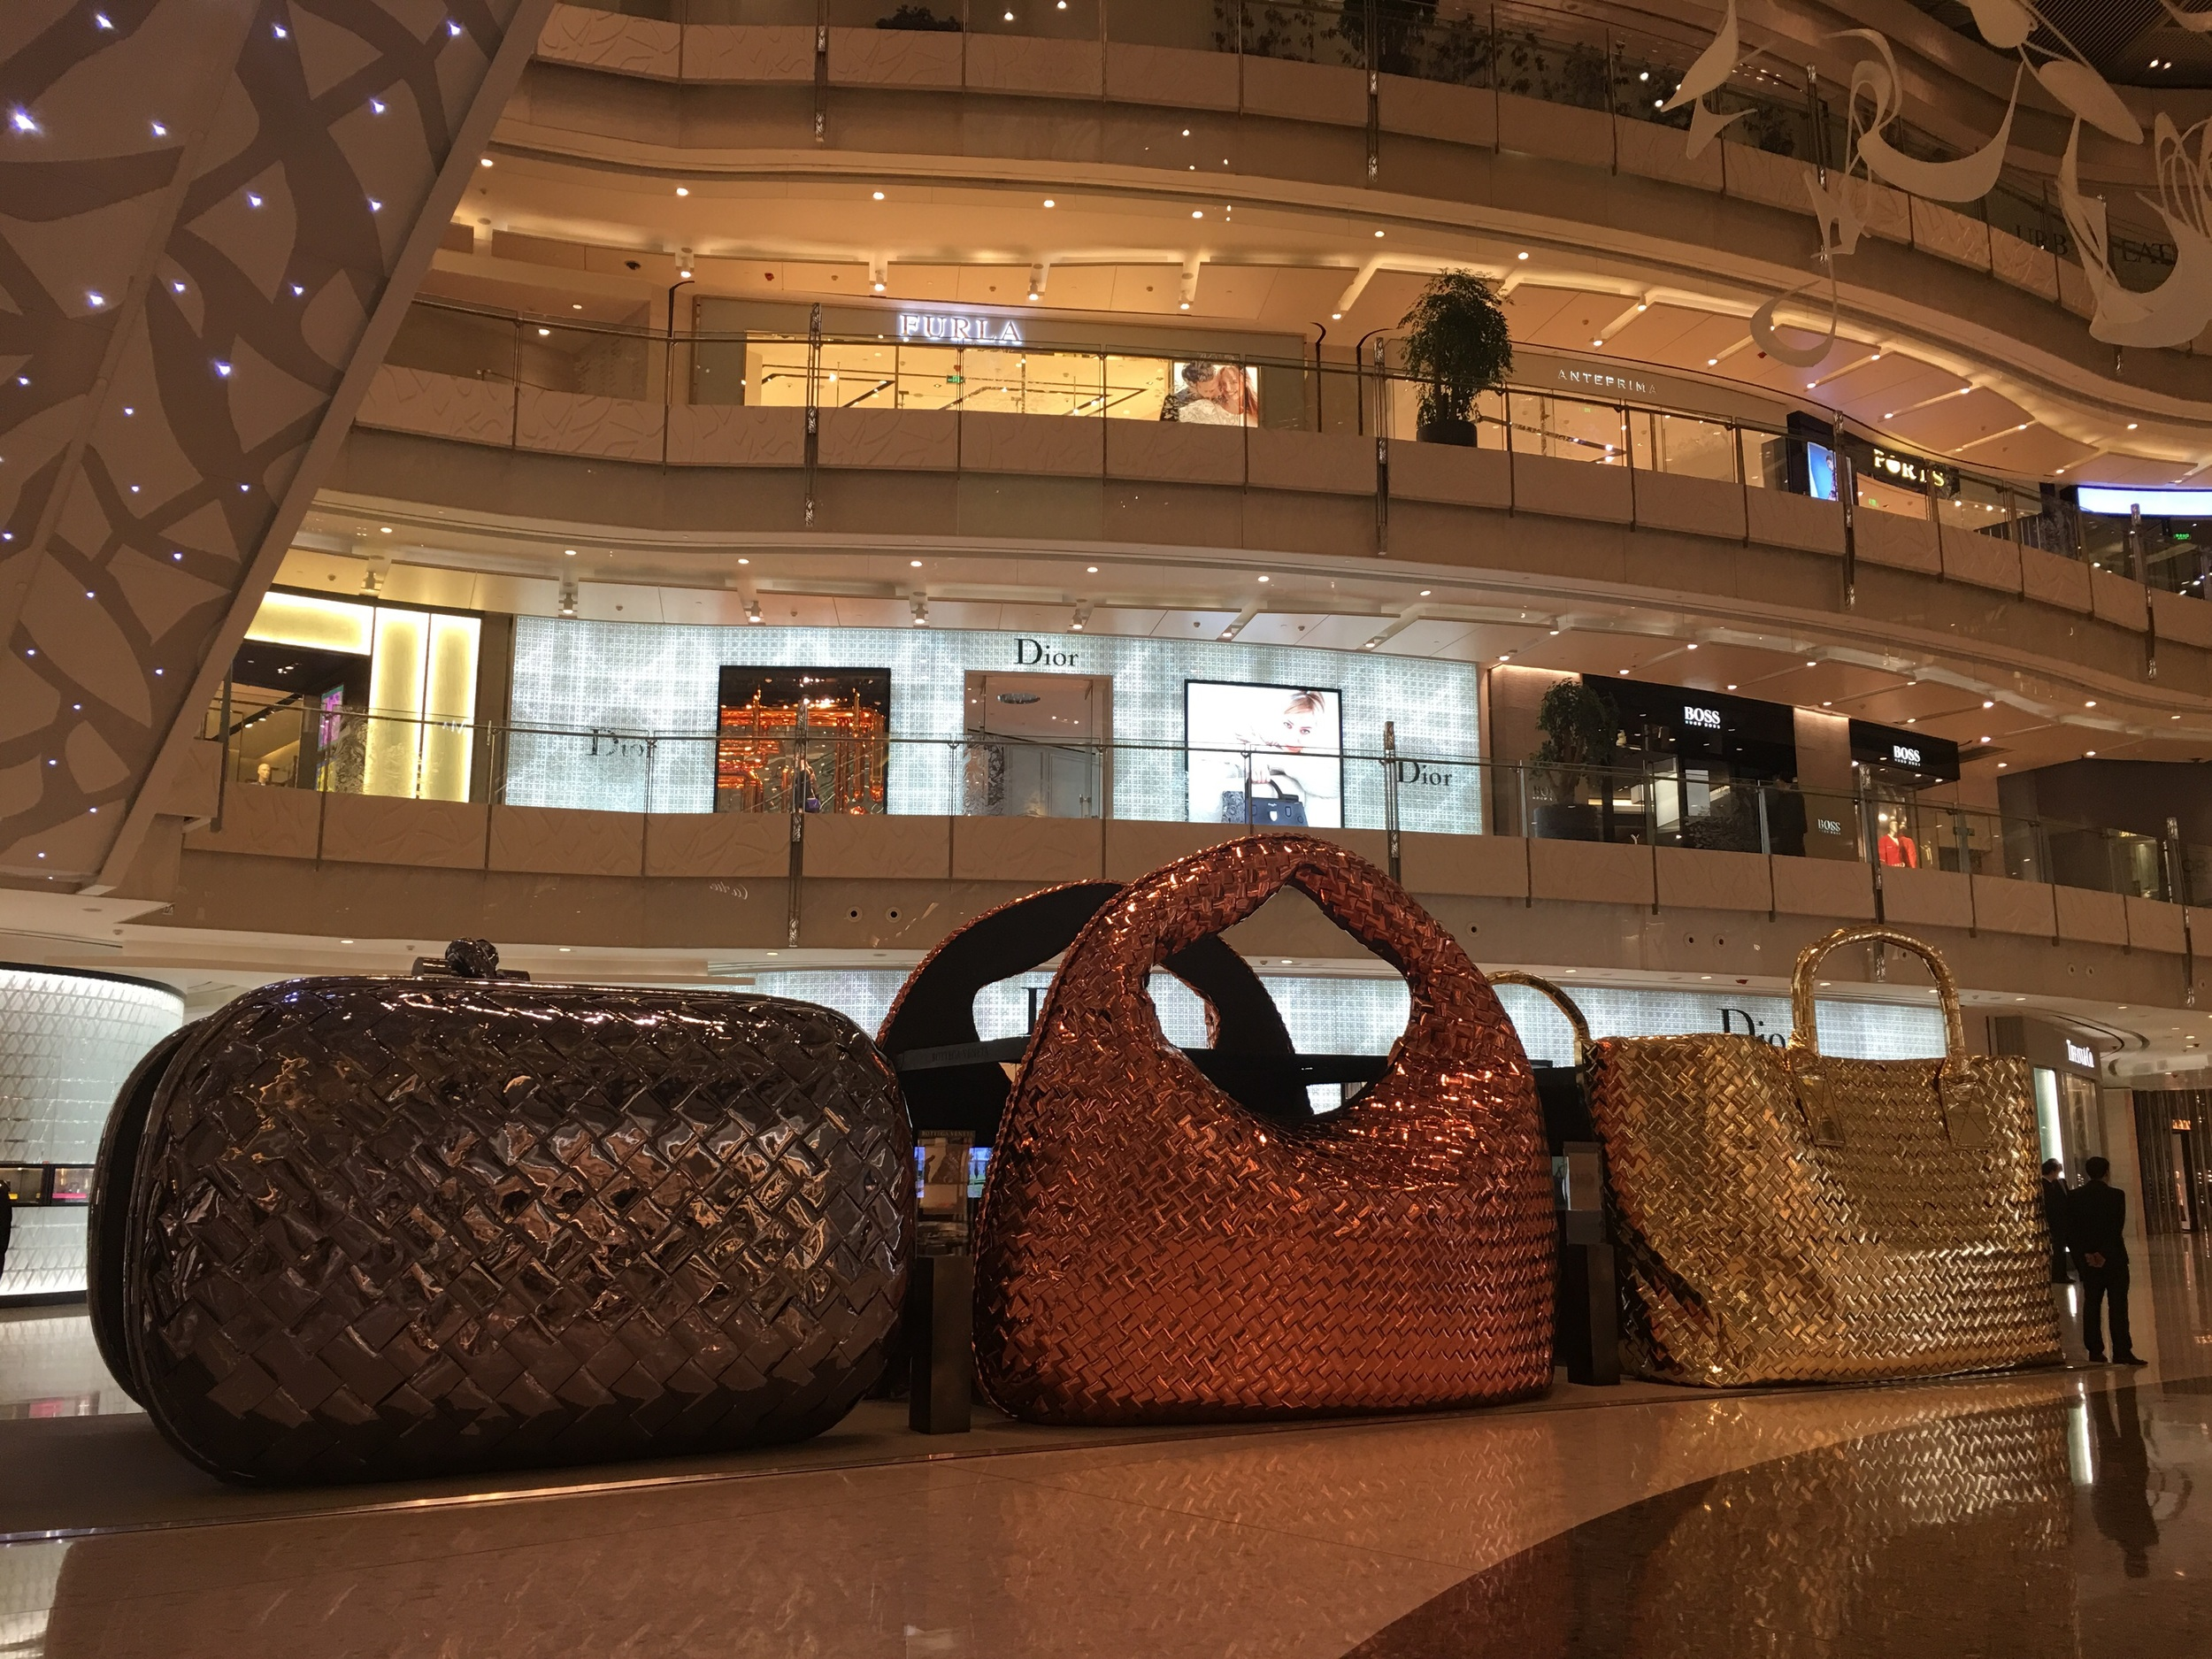 Bottega Veneta larger than life display of purses. You can walk between them. .